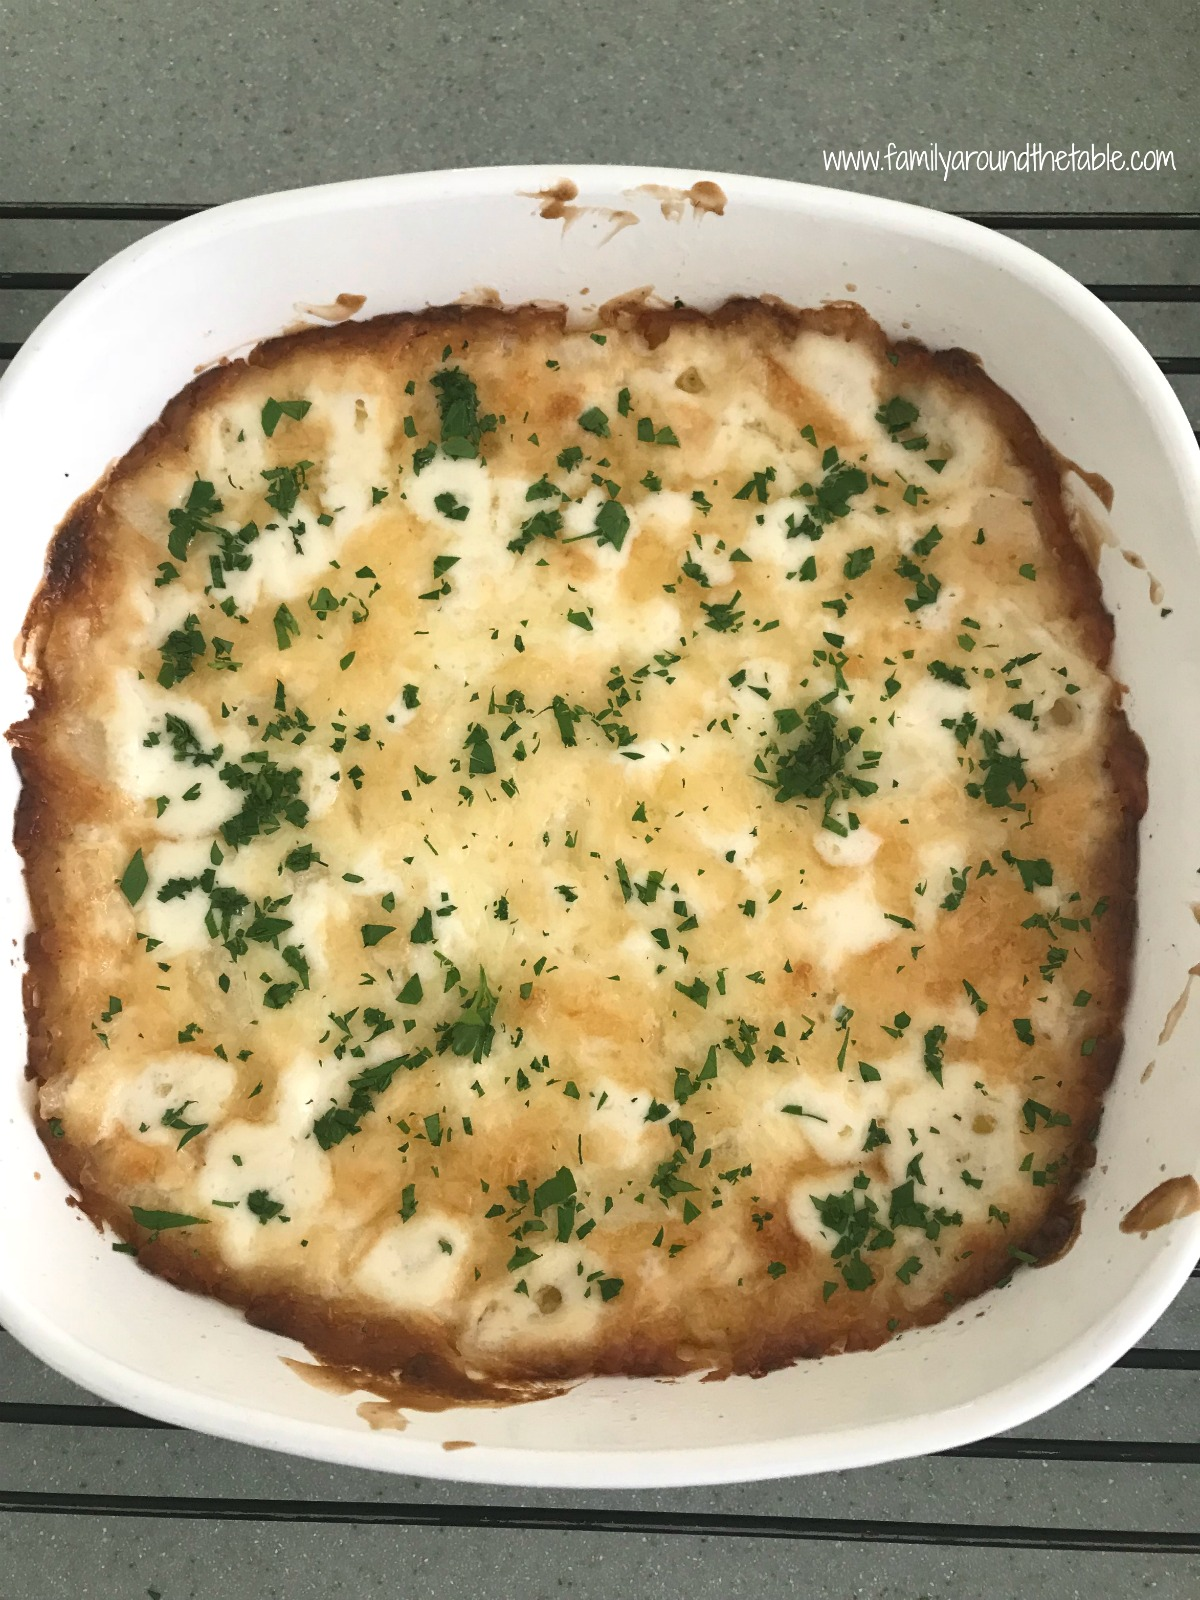 Baked onion dip is creamy and delicious perfect for entertaining friends.